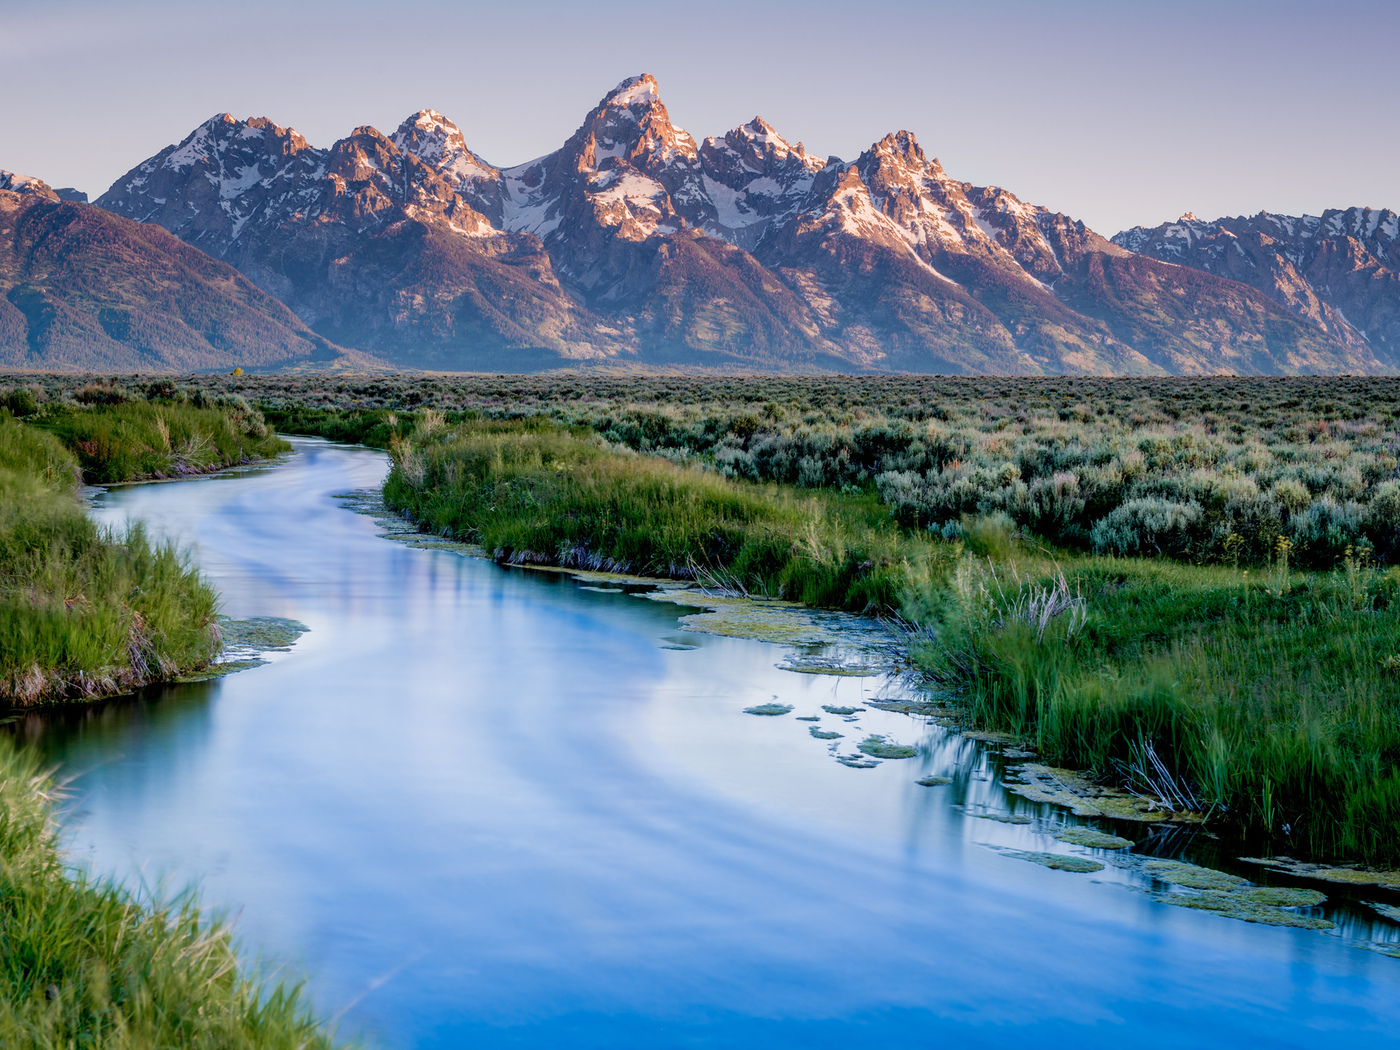 национальный парк, wyoming, mountains, grand teton national park, lake, usa